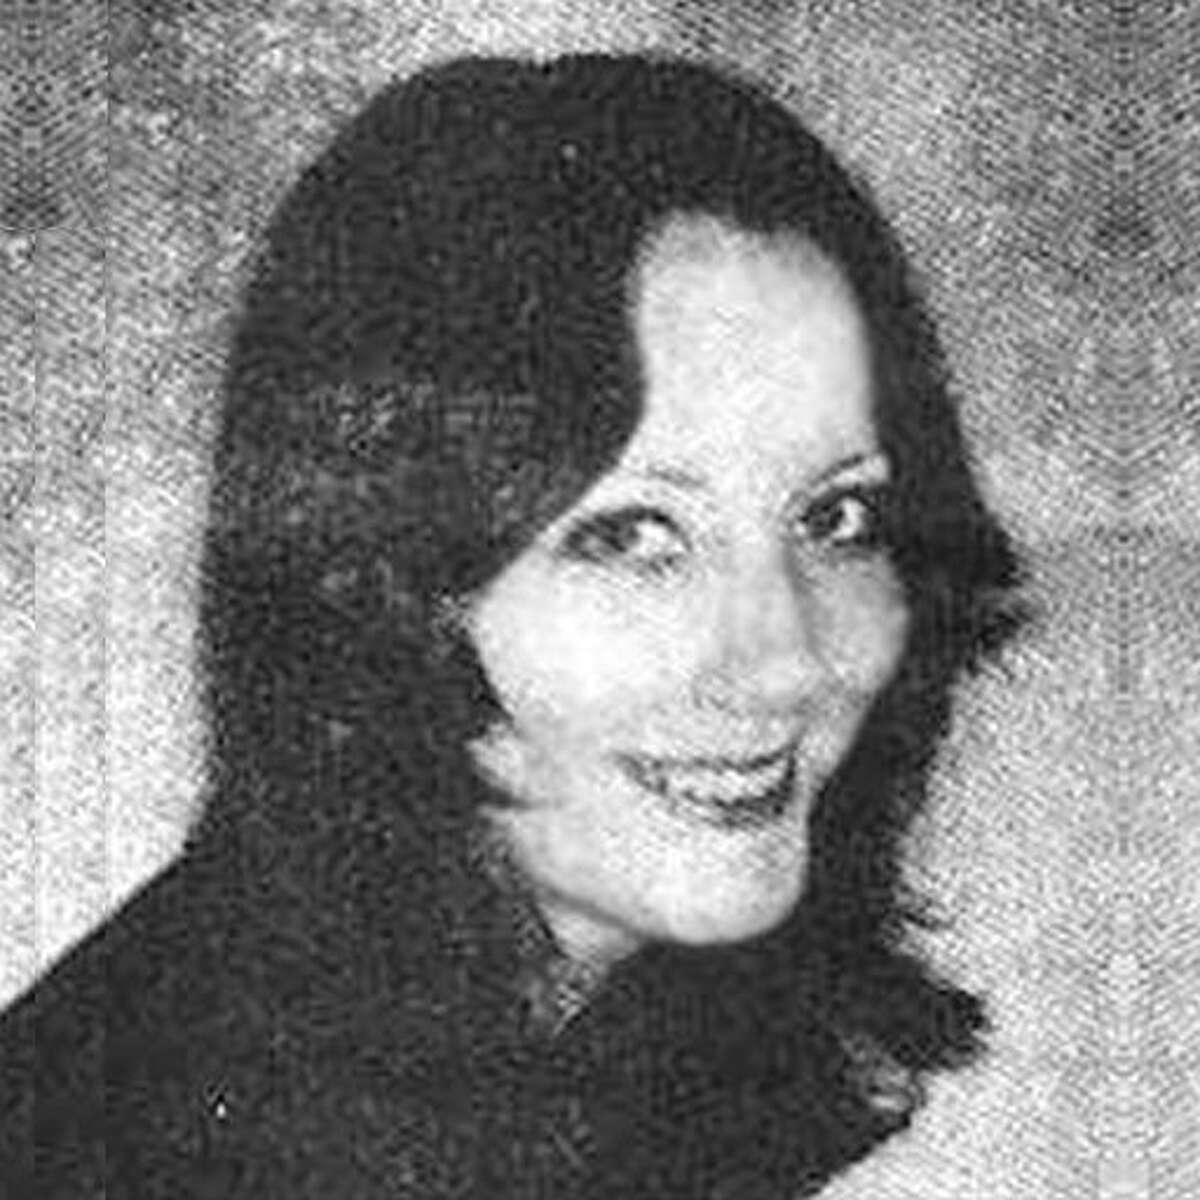 Lou Ellen Burleigh of Walnut Creek, who disappeared in September 1977. A bone determined to be hers was found near Lake Berryessa in 2011.